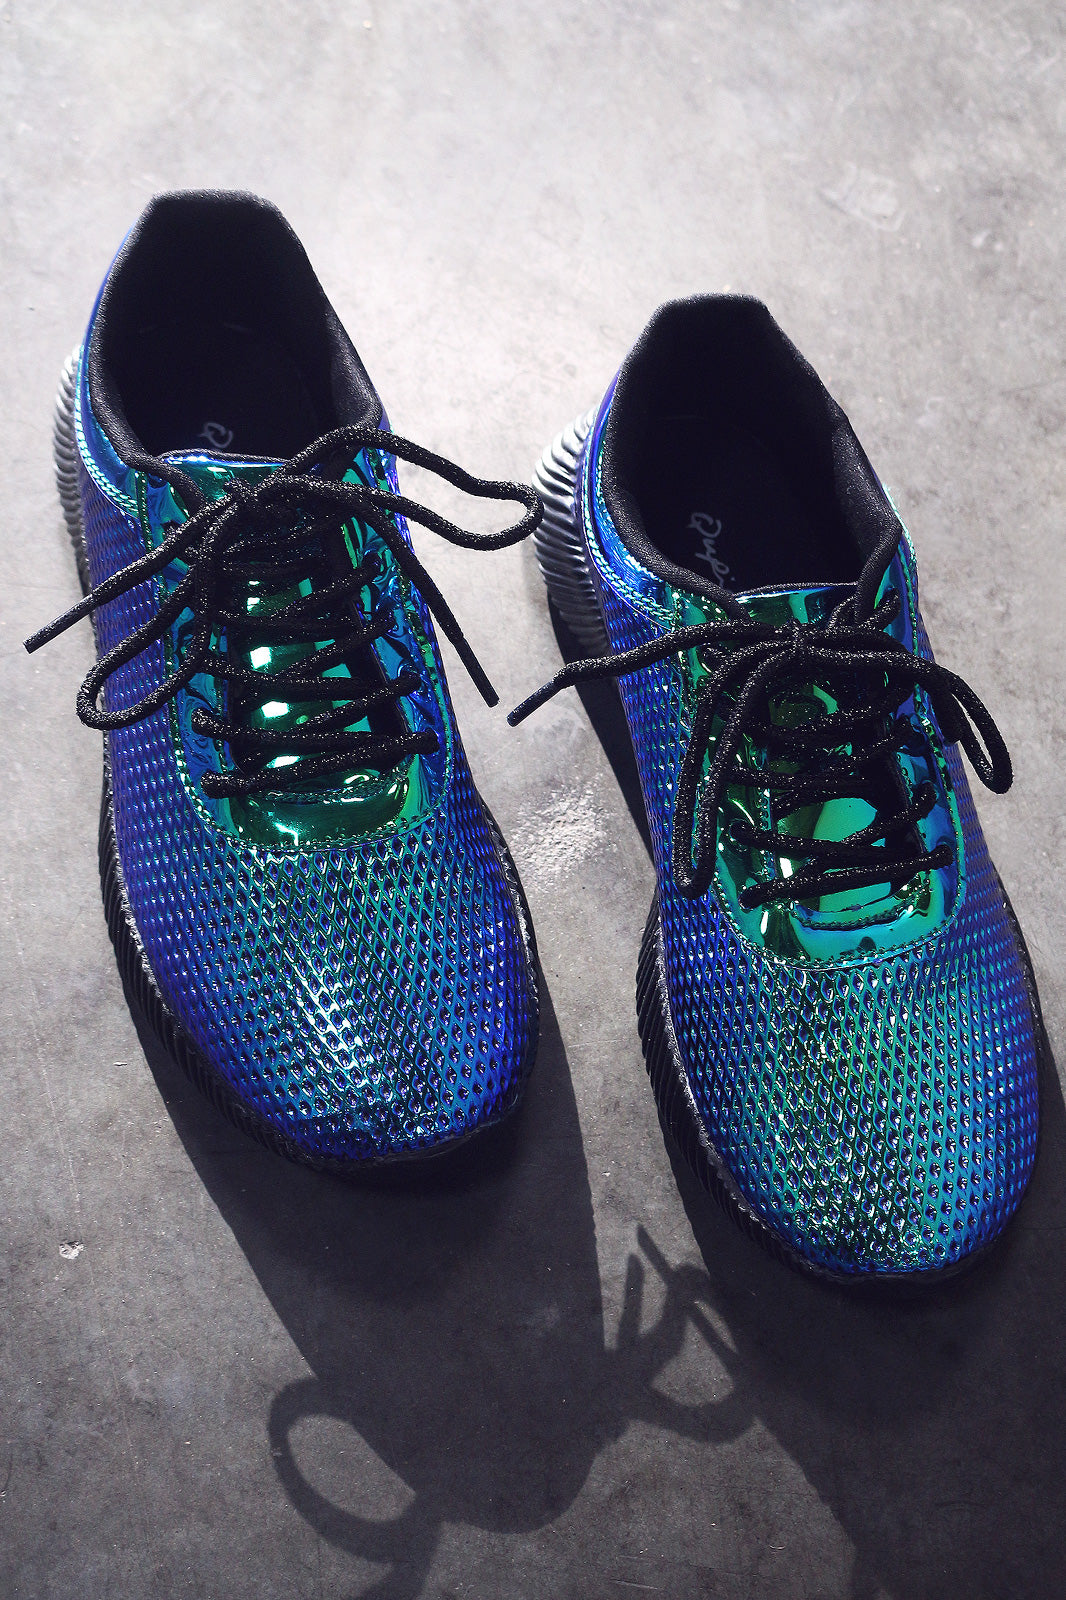 Qupid Textured Metallic Holographic Lace Up Sneakers